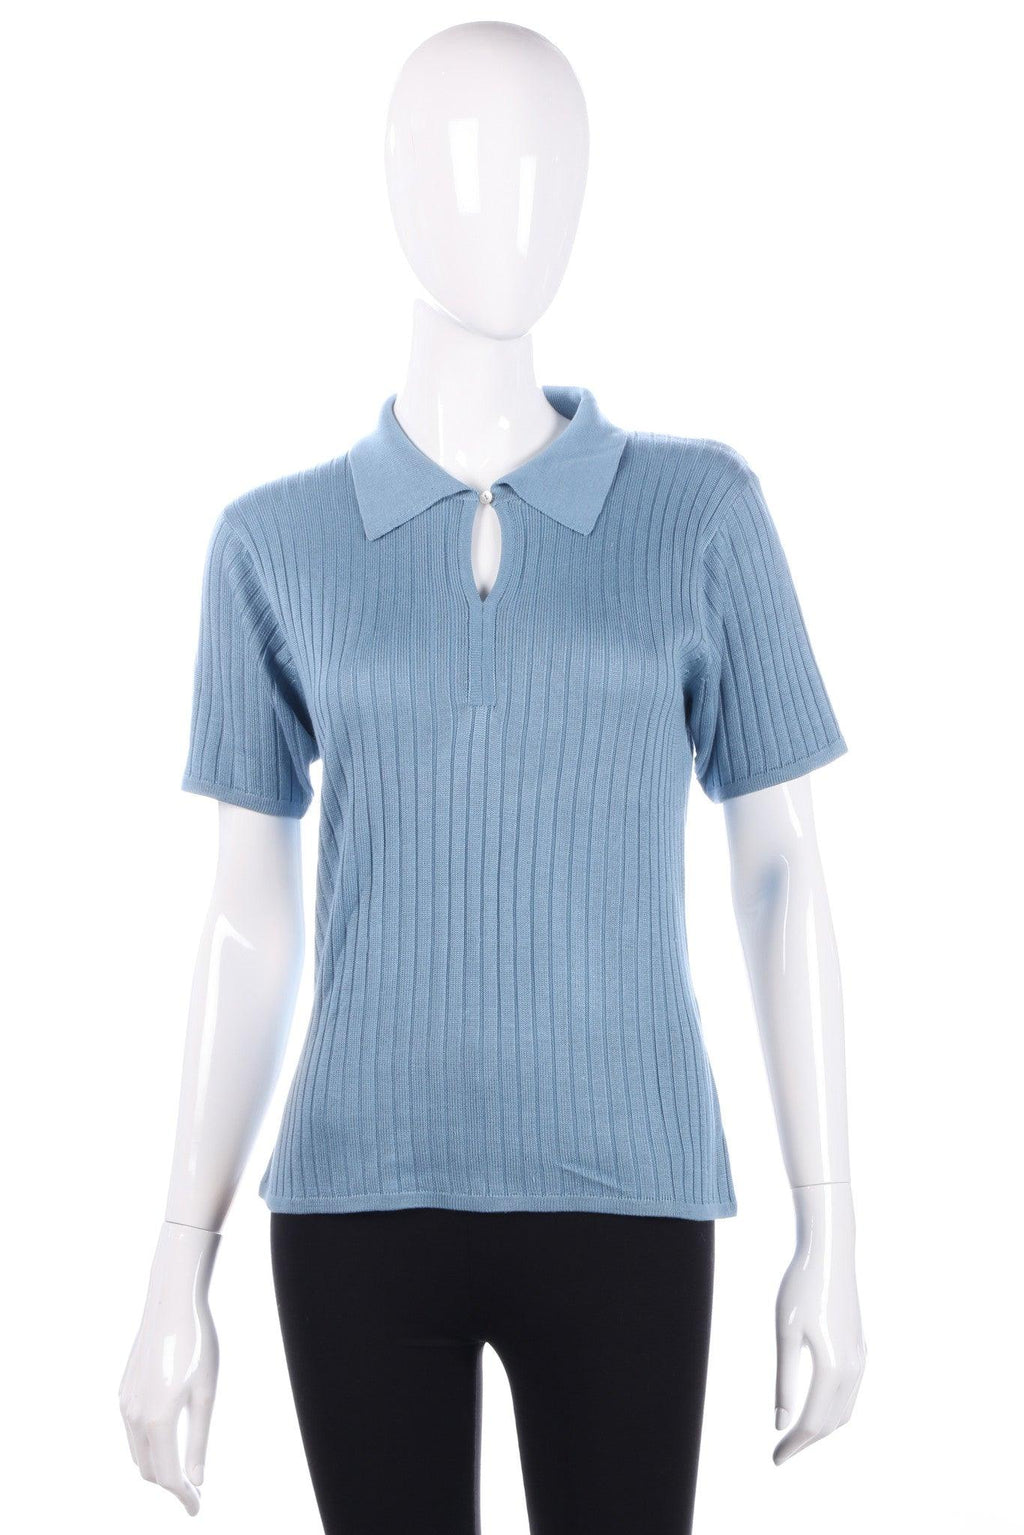 Viz-A-Viz blue top with collar size M